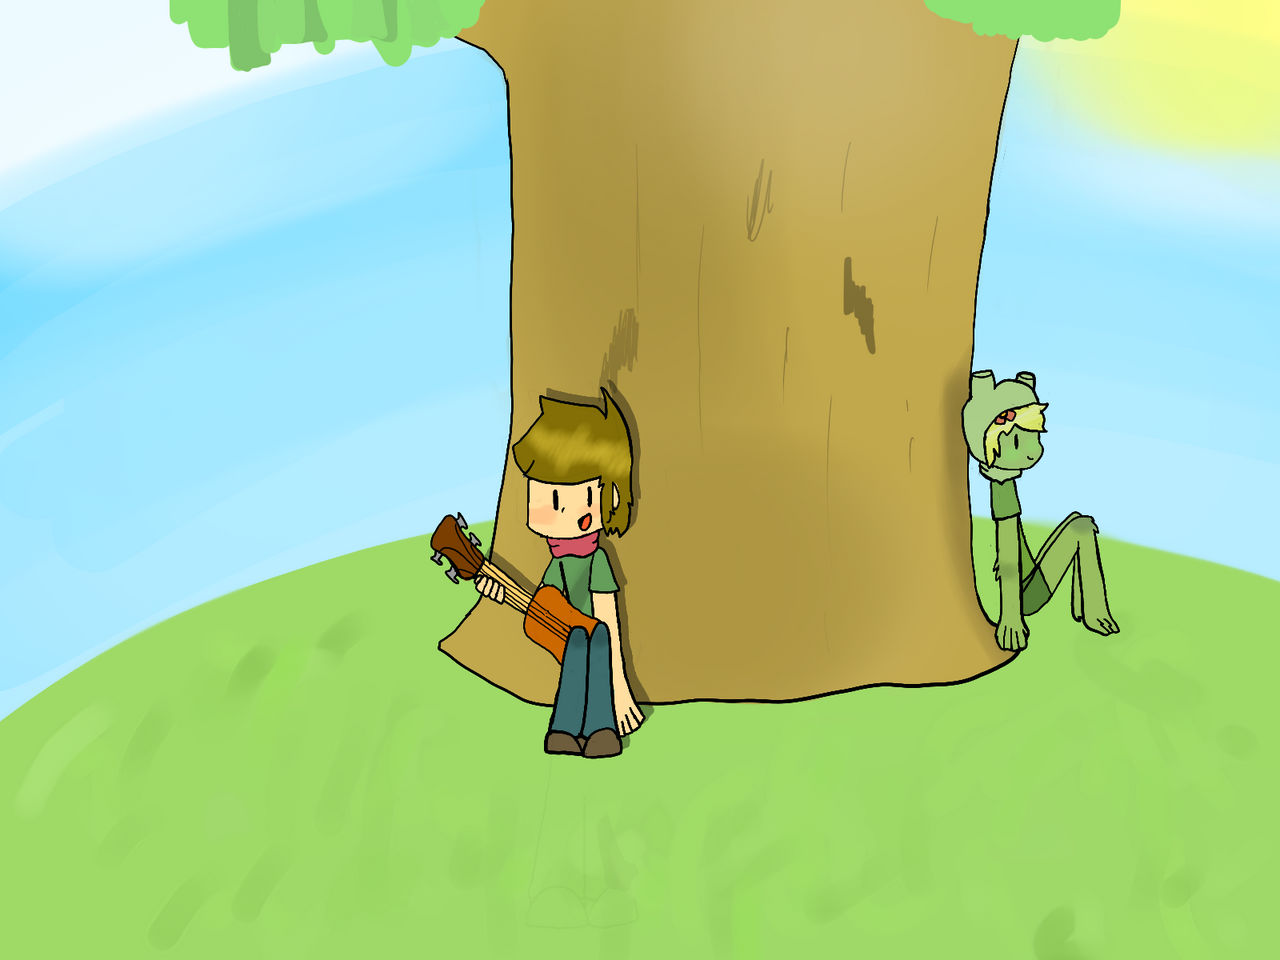 Have You Been Talking To That Tree Guy Again By Art Show Bendy On Deviantart Aliexpress carries wide variety of products, so you. deviantart